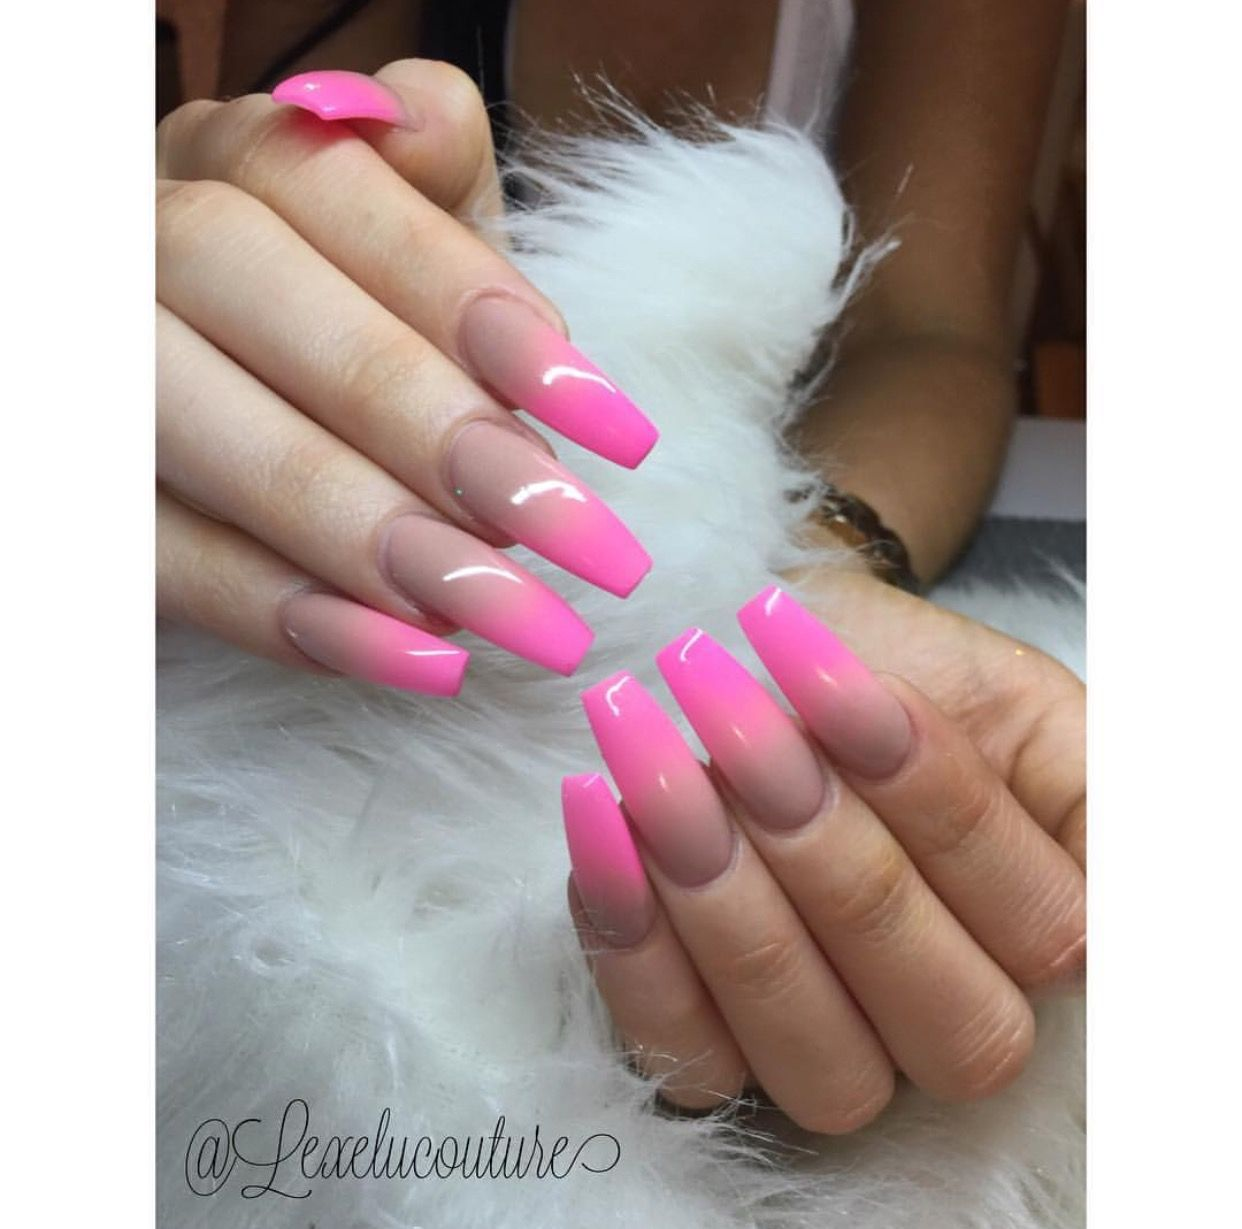 Ombré Nails ✨✨✨ ➡️Hair,Nails,And Style ➡️Hair,Nails,And Style ...